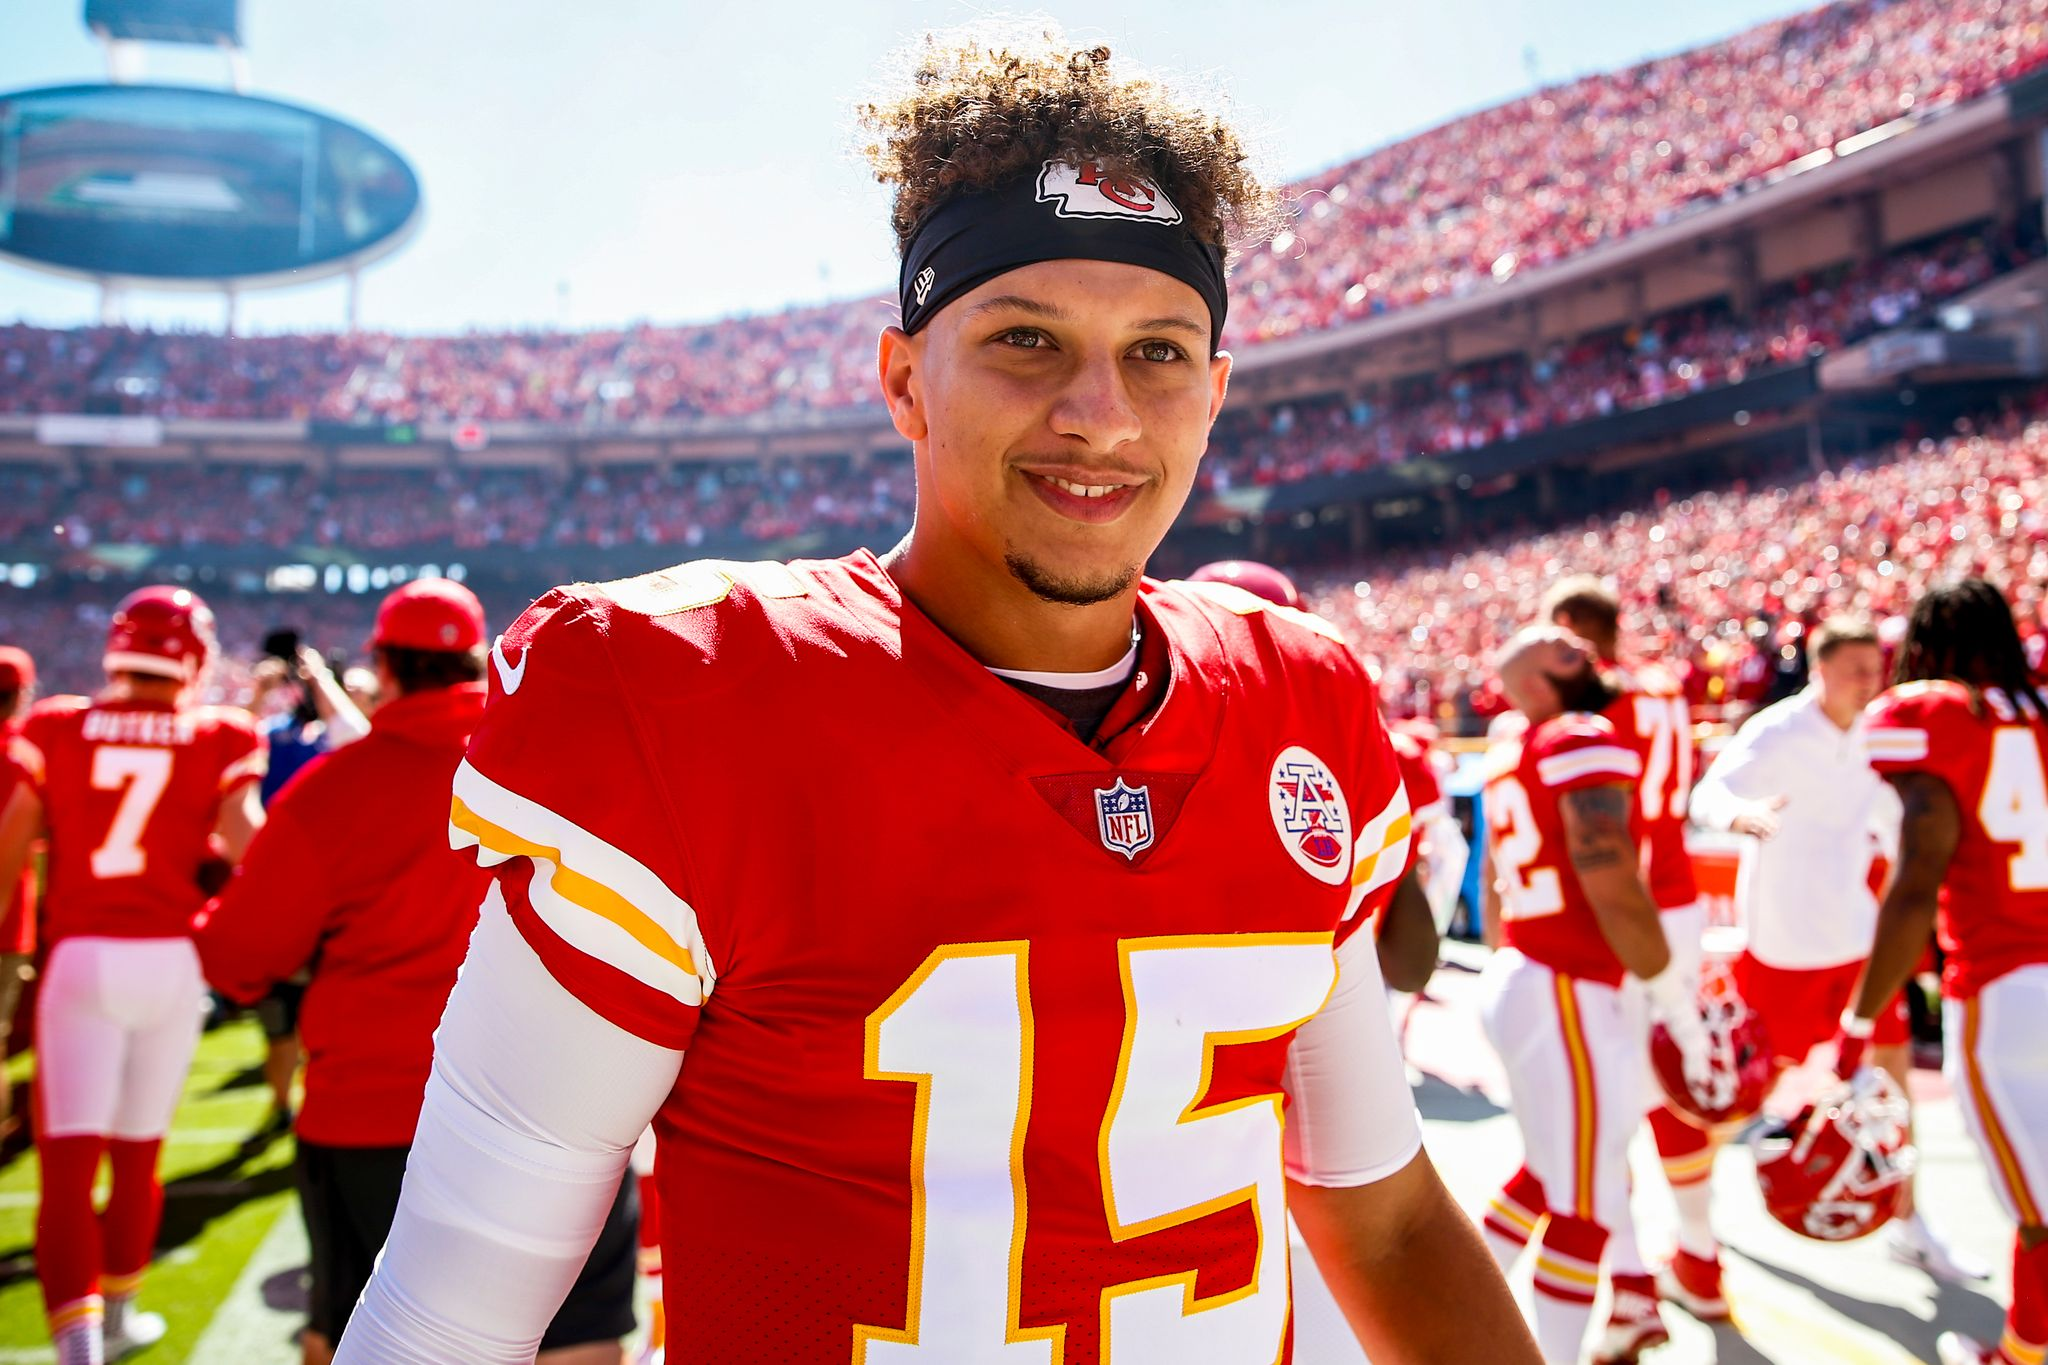 Patrick Mahomes #15 of the Kansas City Chiefs smiles on the sidelines before the start of the game against the San Francisco 49ers at Arrowhead Stadium on September 23rd, 2018 in Kansas City, Missouri | Photo: Getty Images